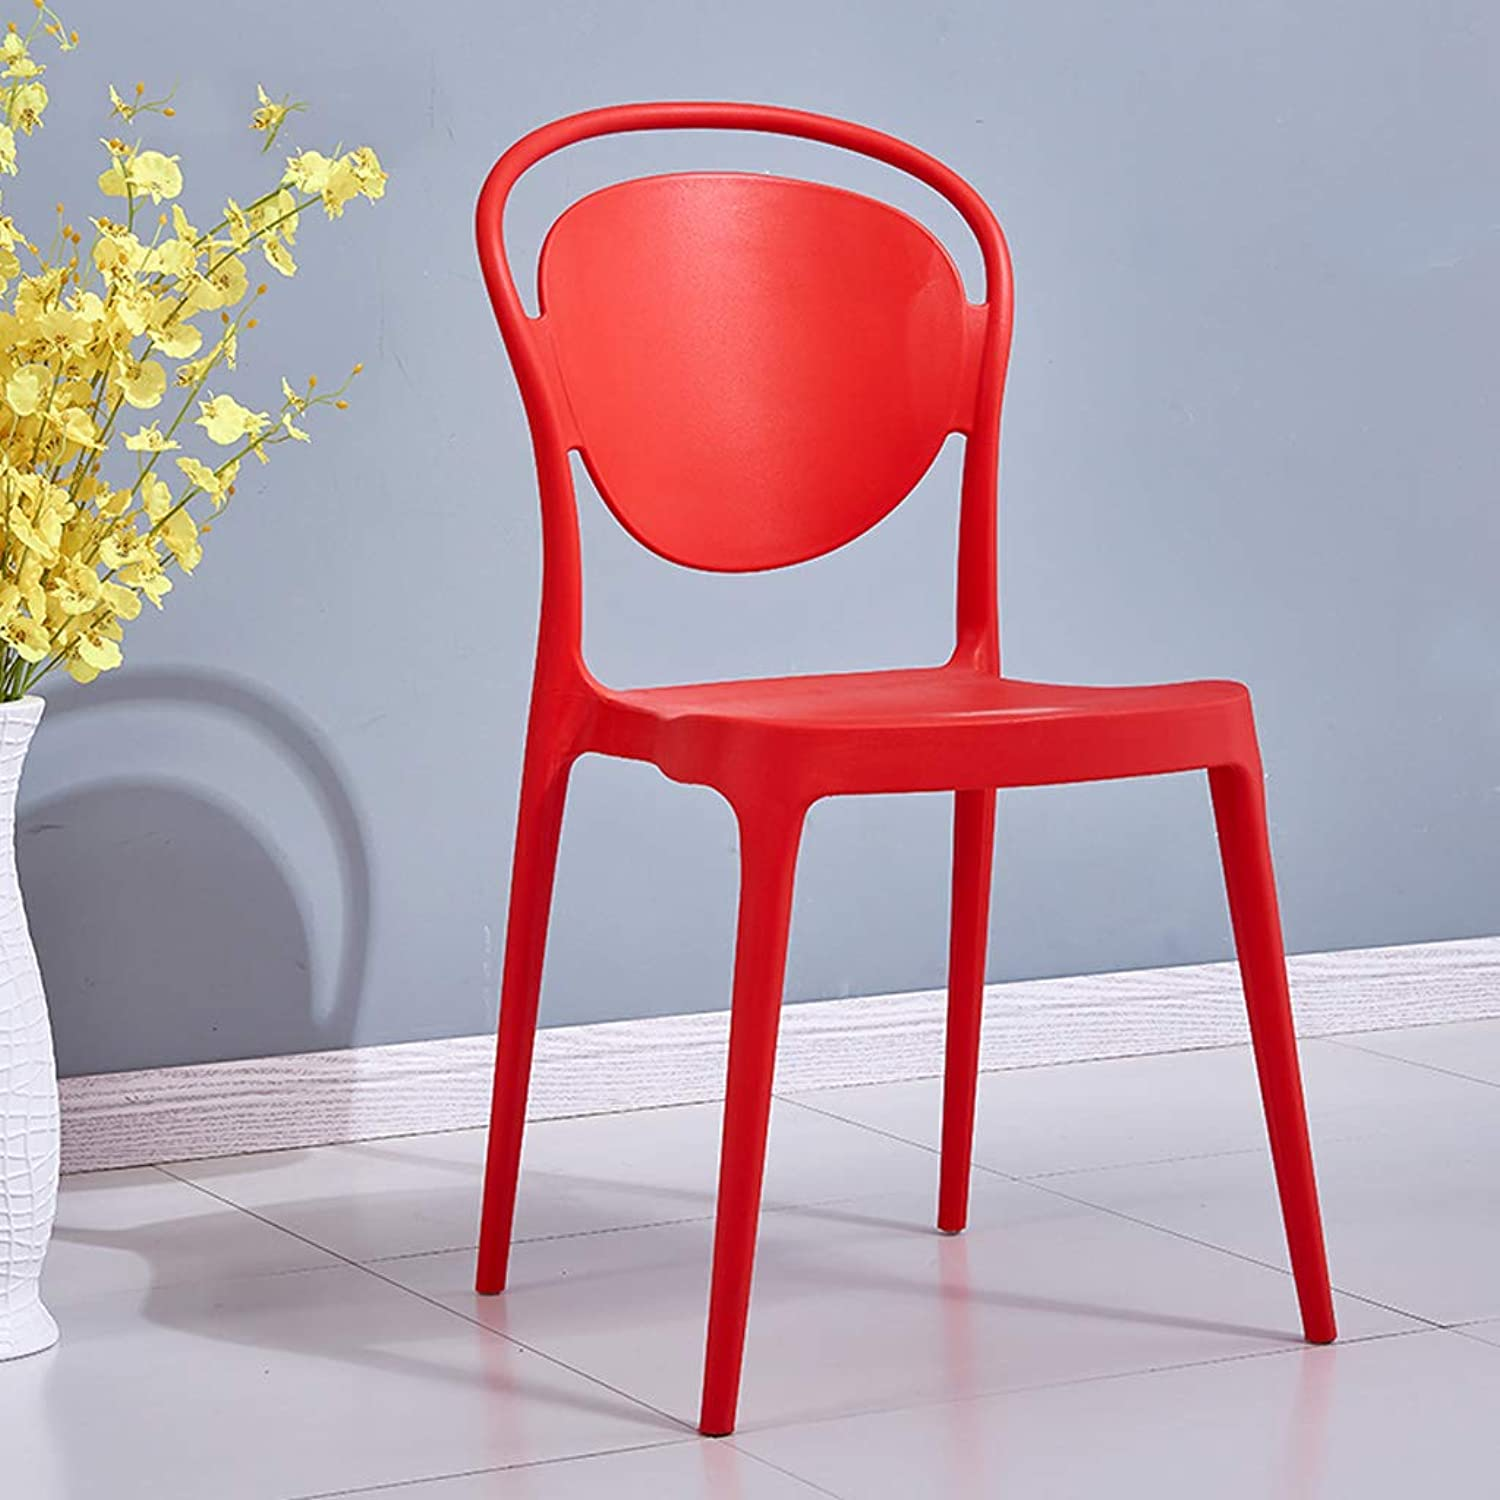 Modern Nordic Simple Dining Chair Backrest Creative Office to Discuss Chairs Adult Plastic Fashion Restaurant Chair Stool Red